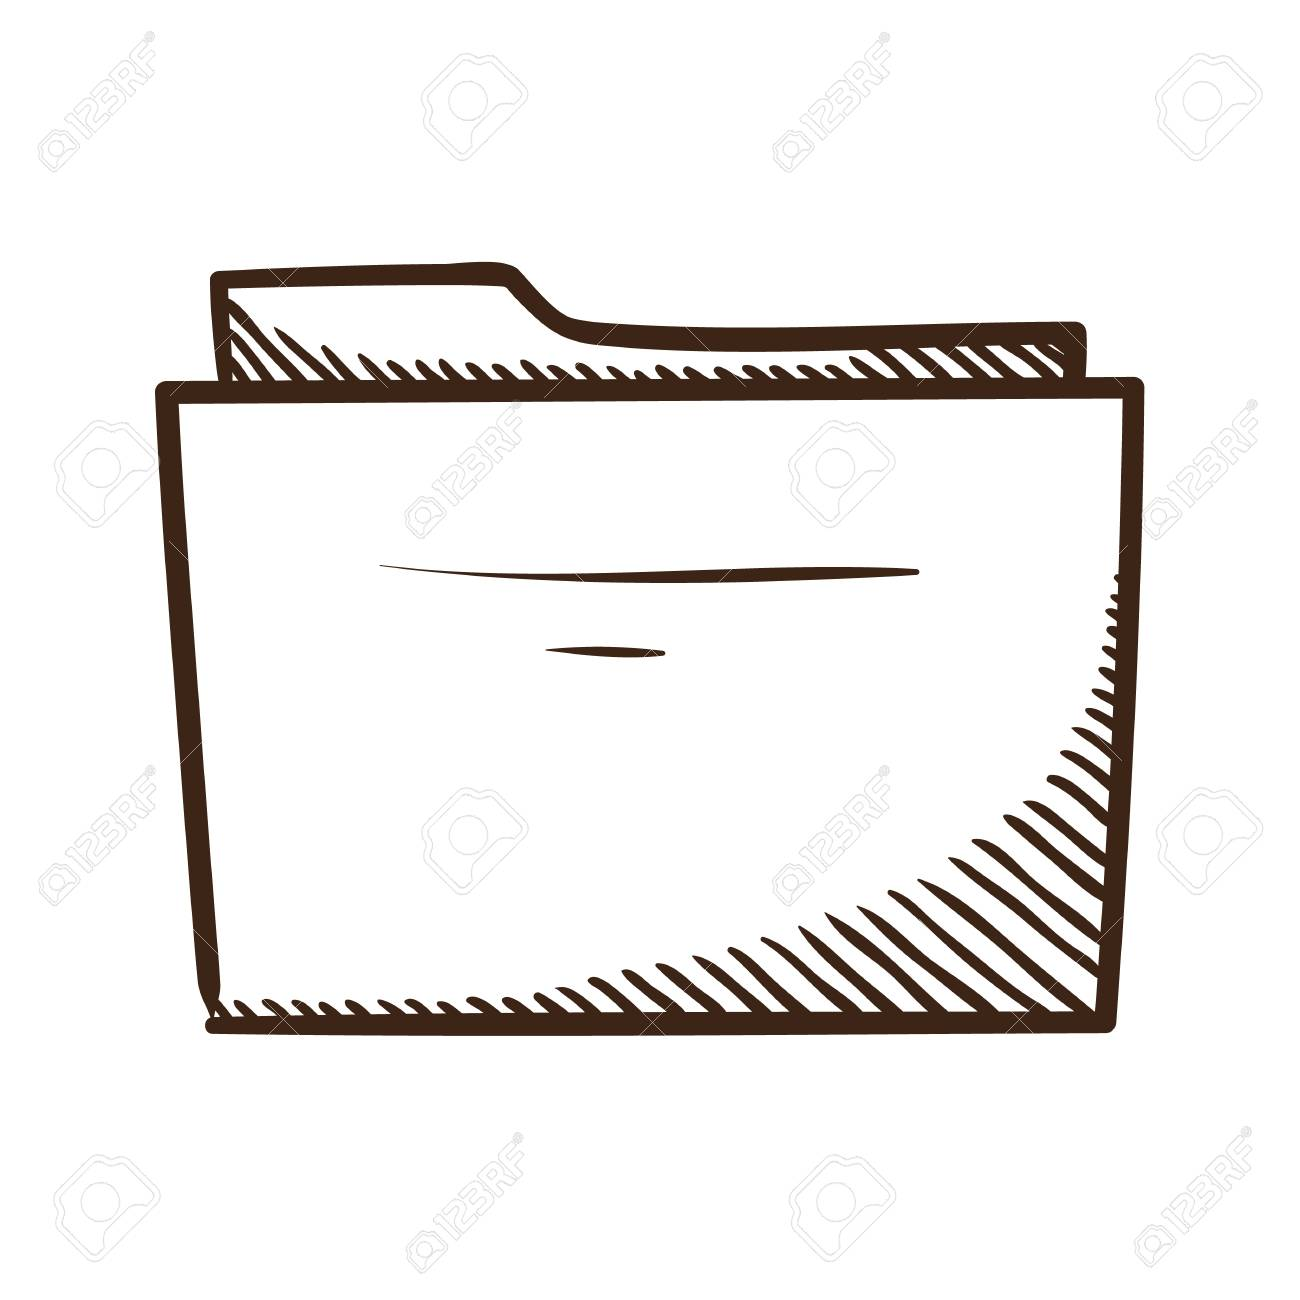 Isolated sketch icon pictogram. Stock Vector - 26350195